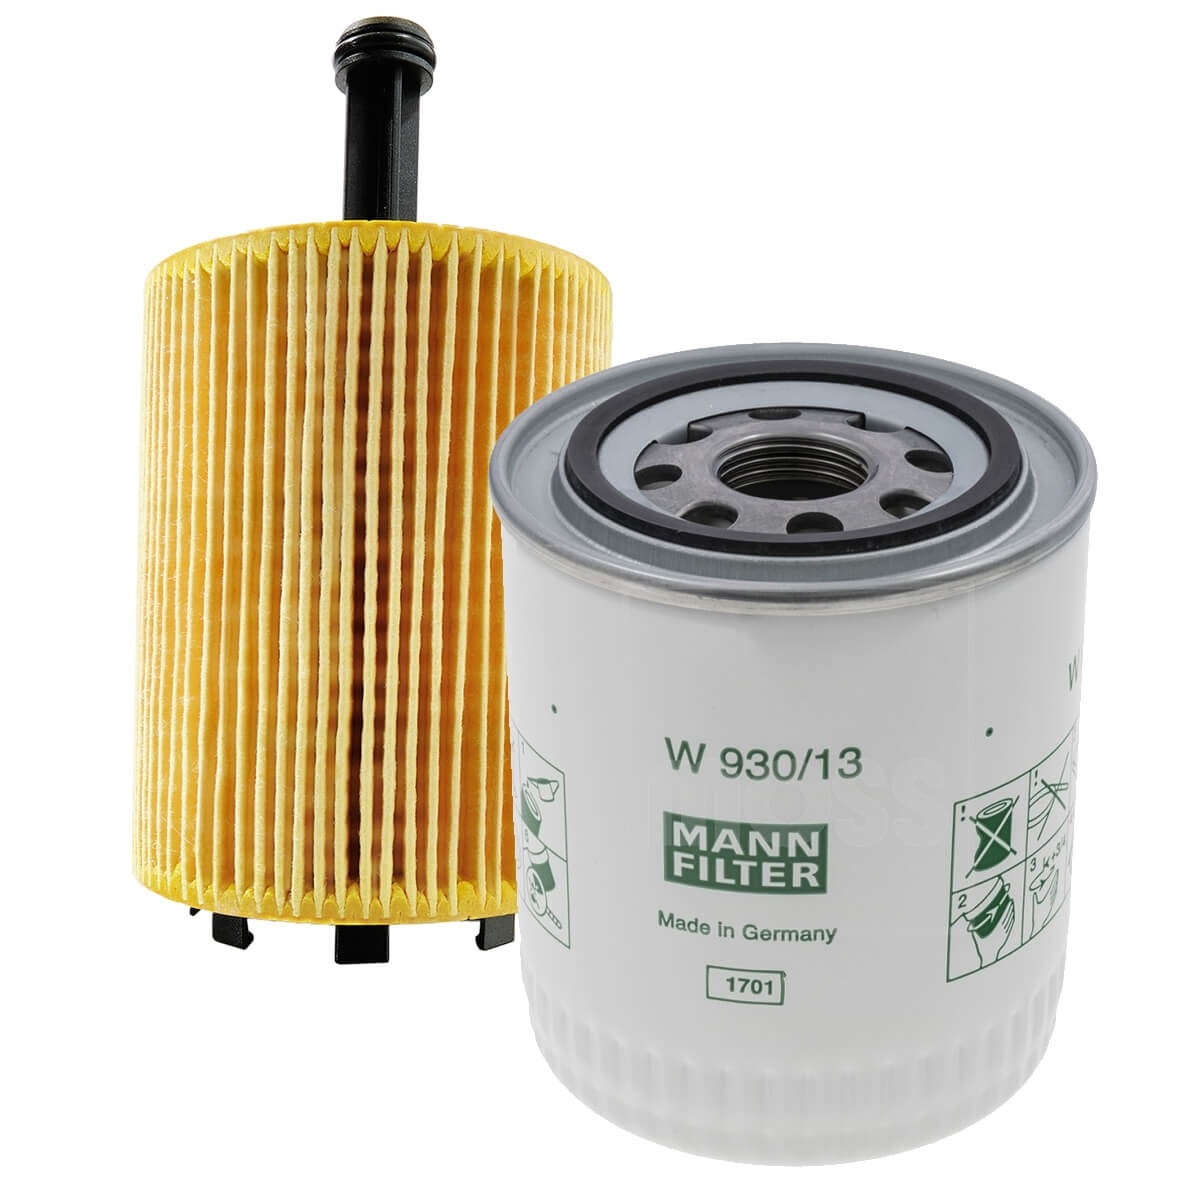 HYUNDAI PONY/EXCEL Oil Filter